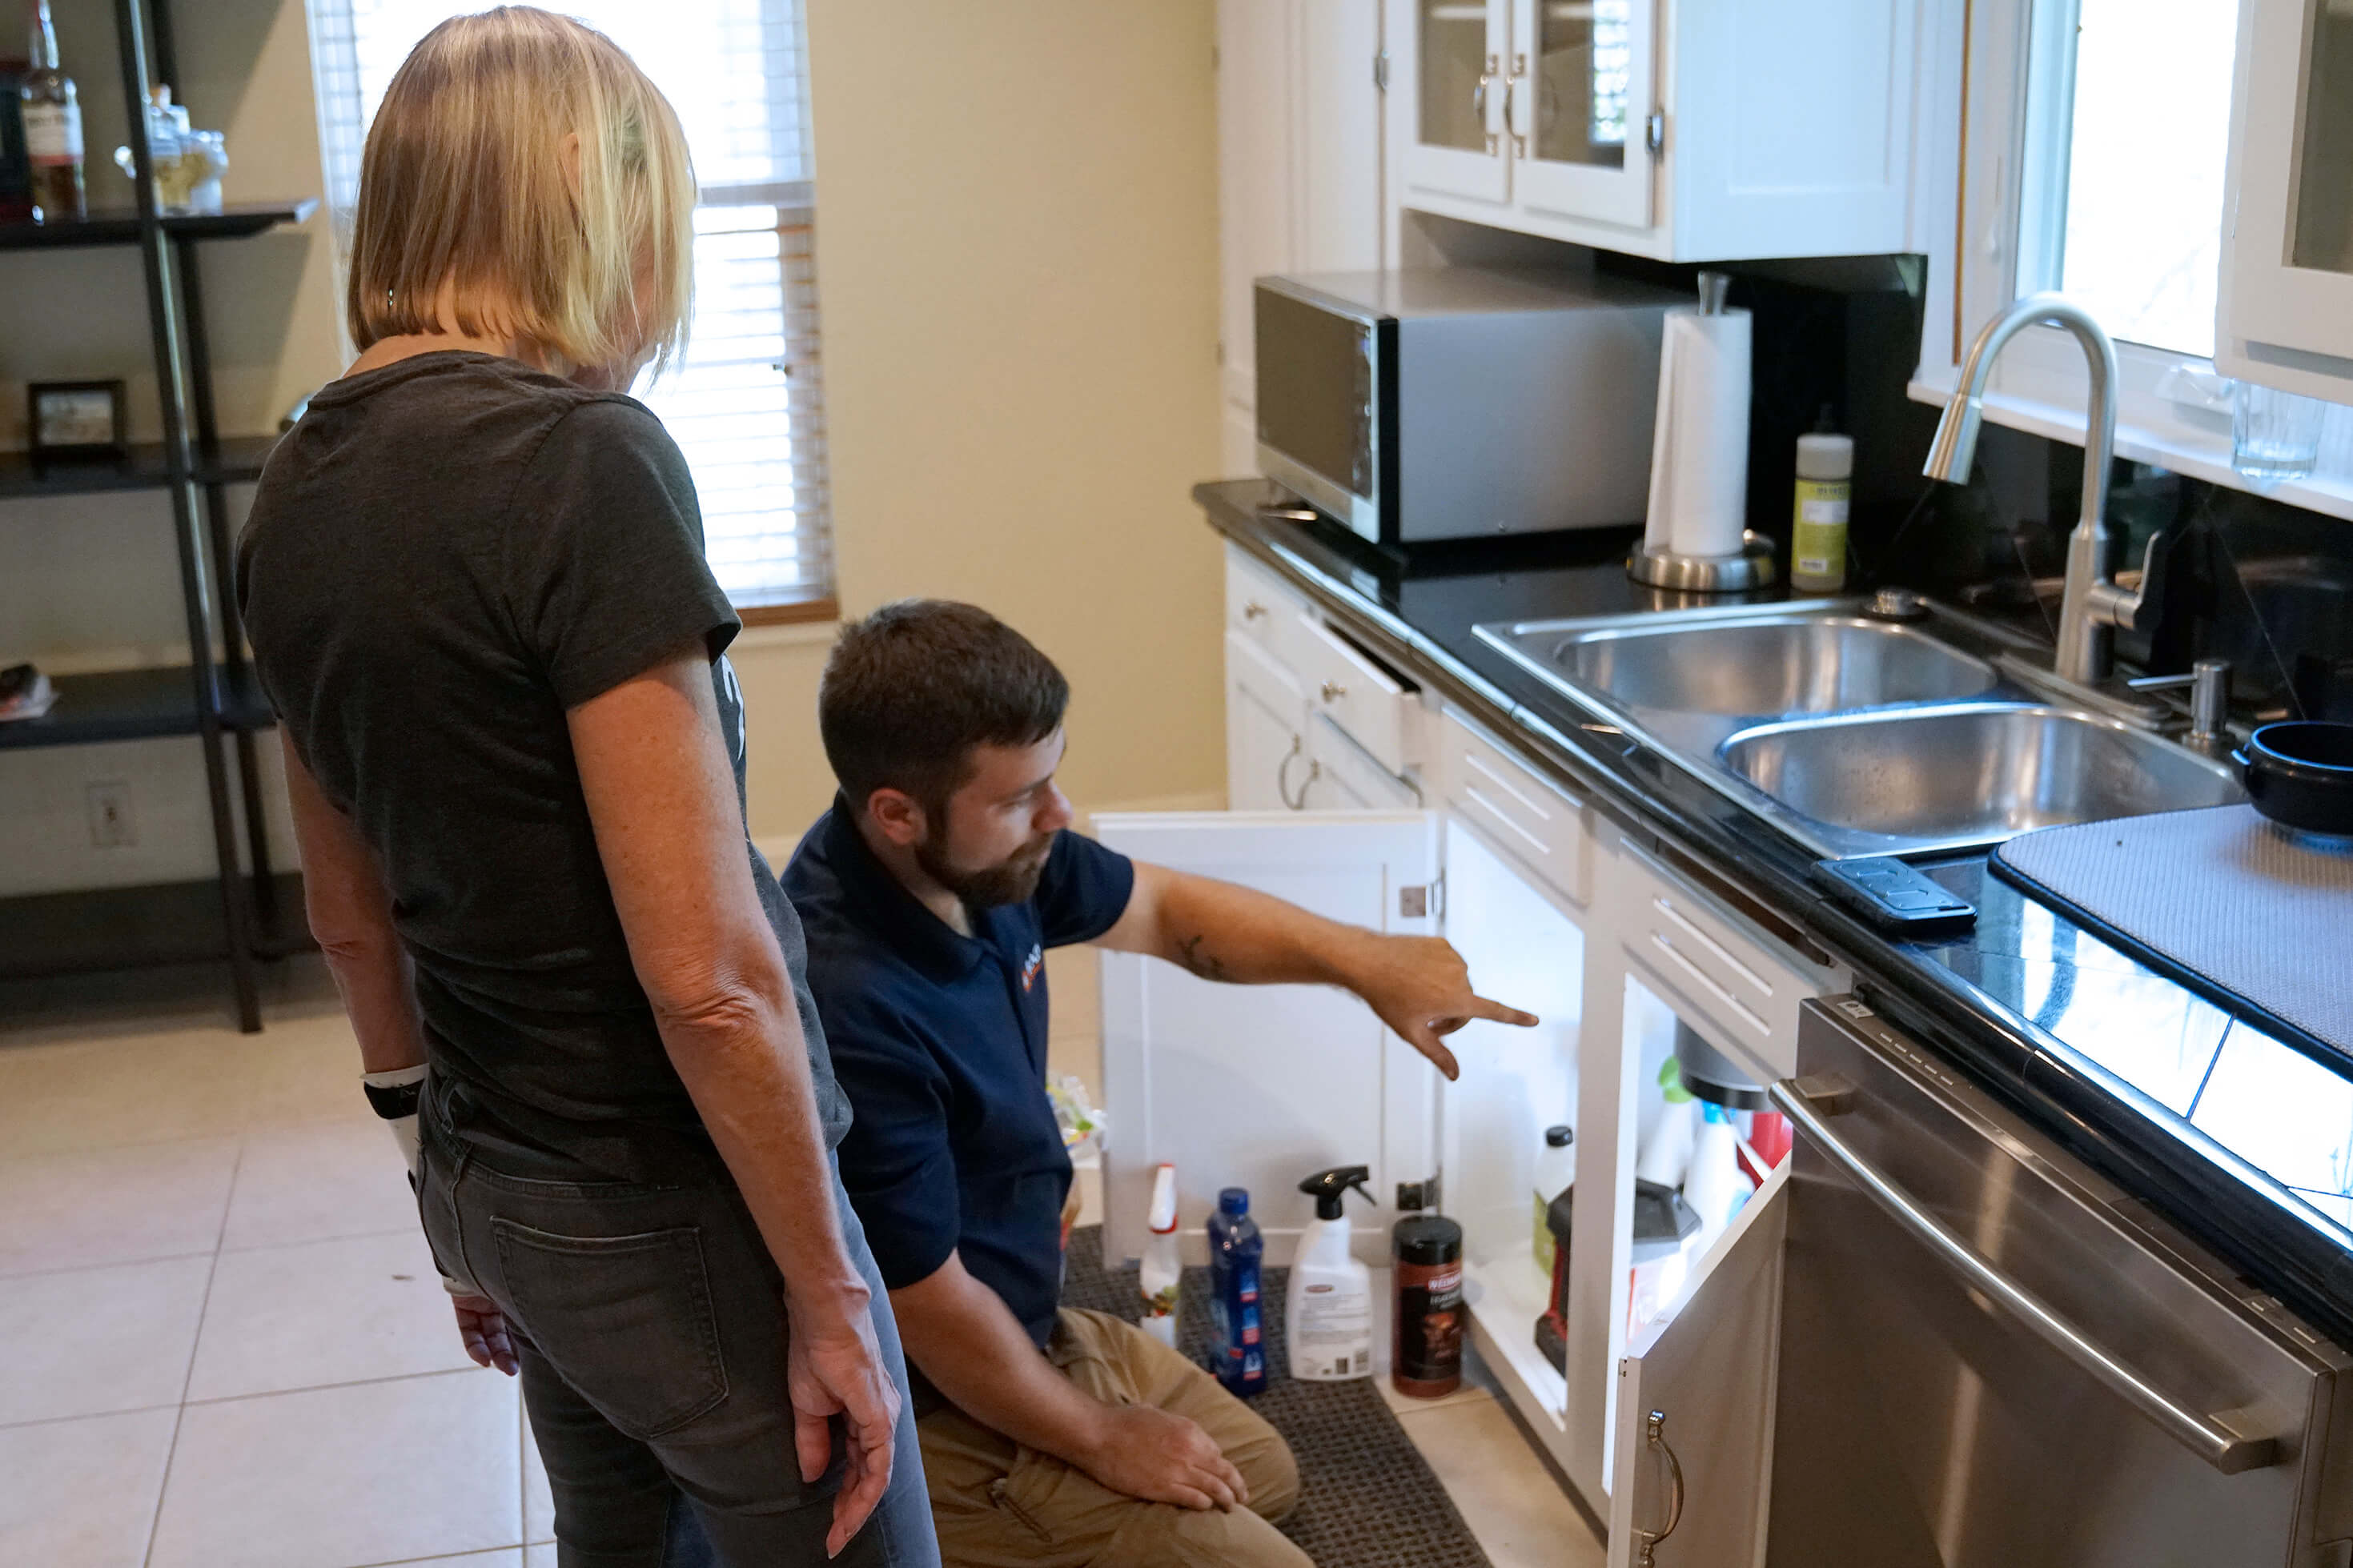 licensed plumber diagnosing problem  with kitchen sink